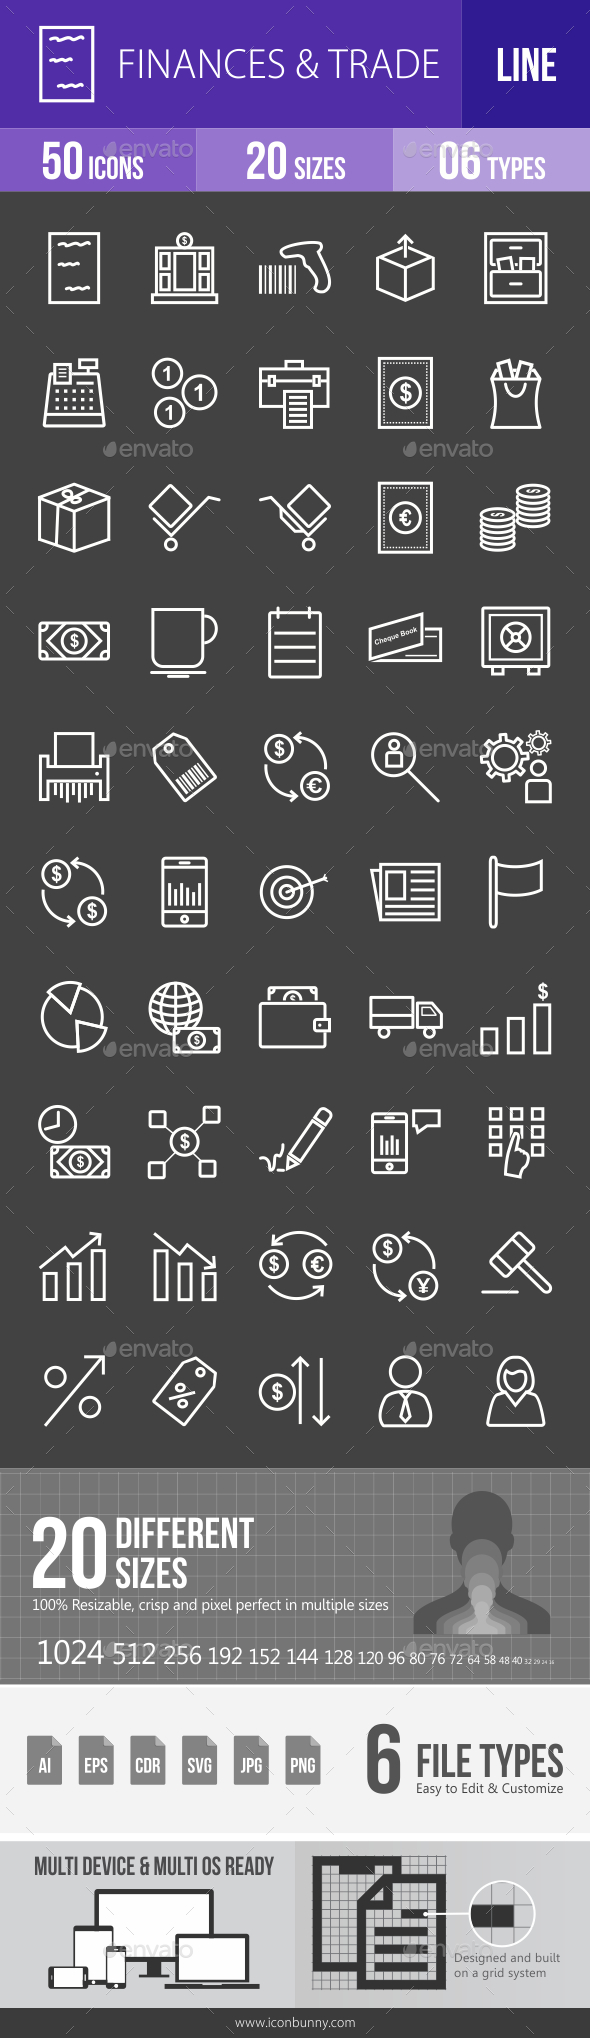 Finances & Trade Line Inverted Icons - Icons